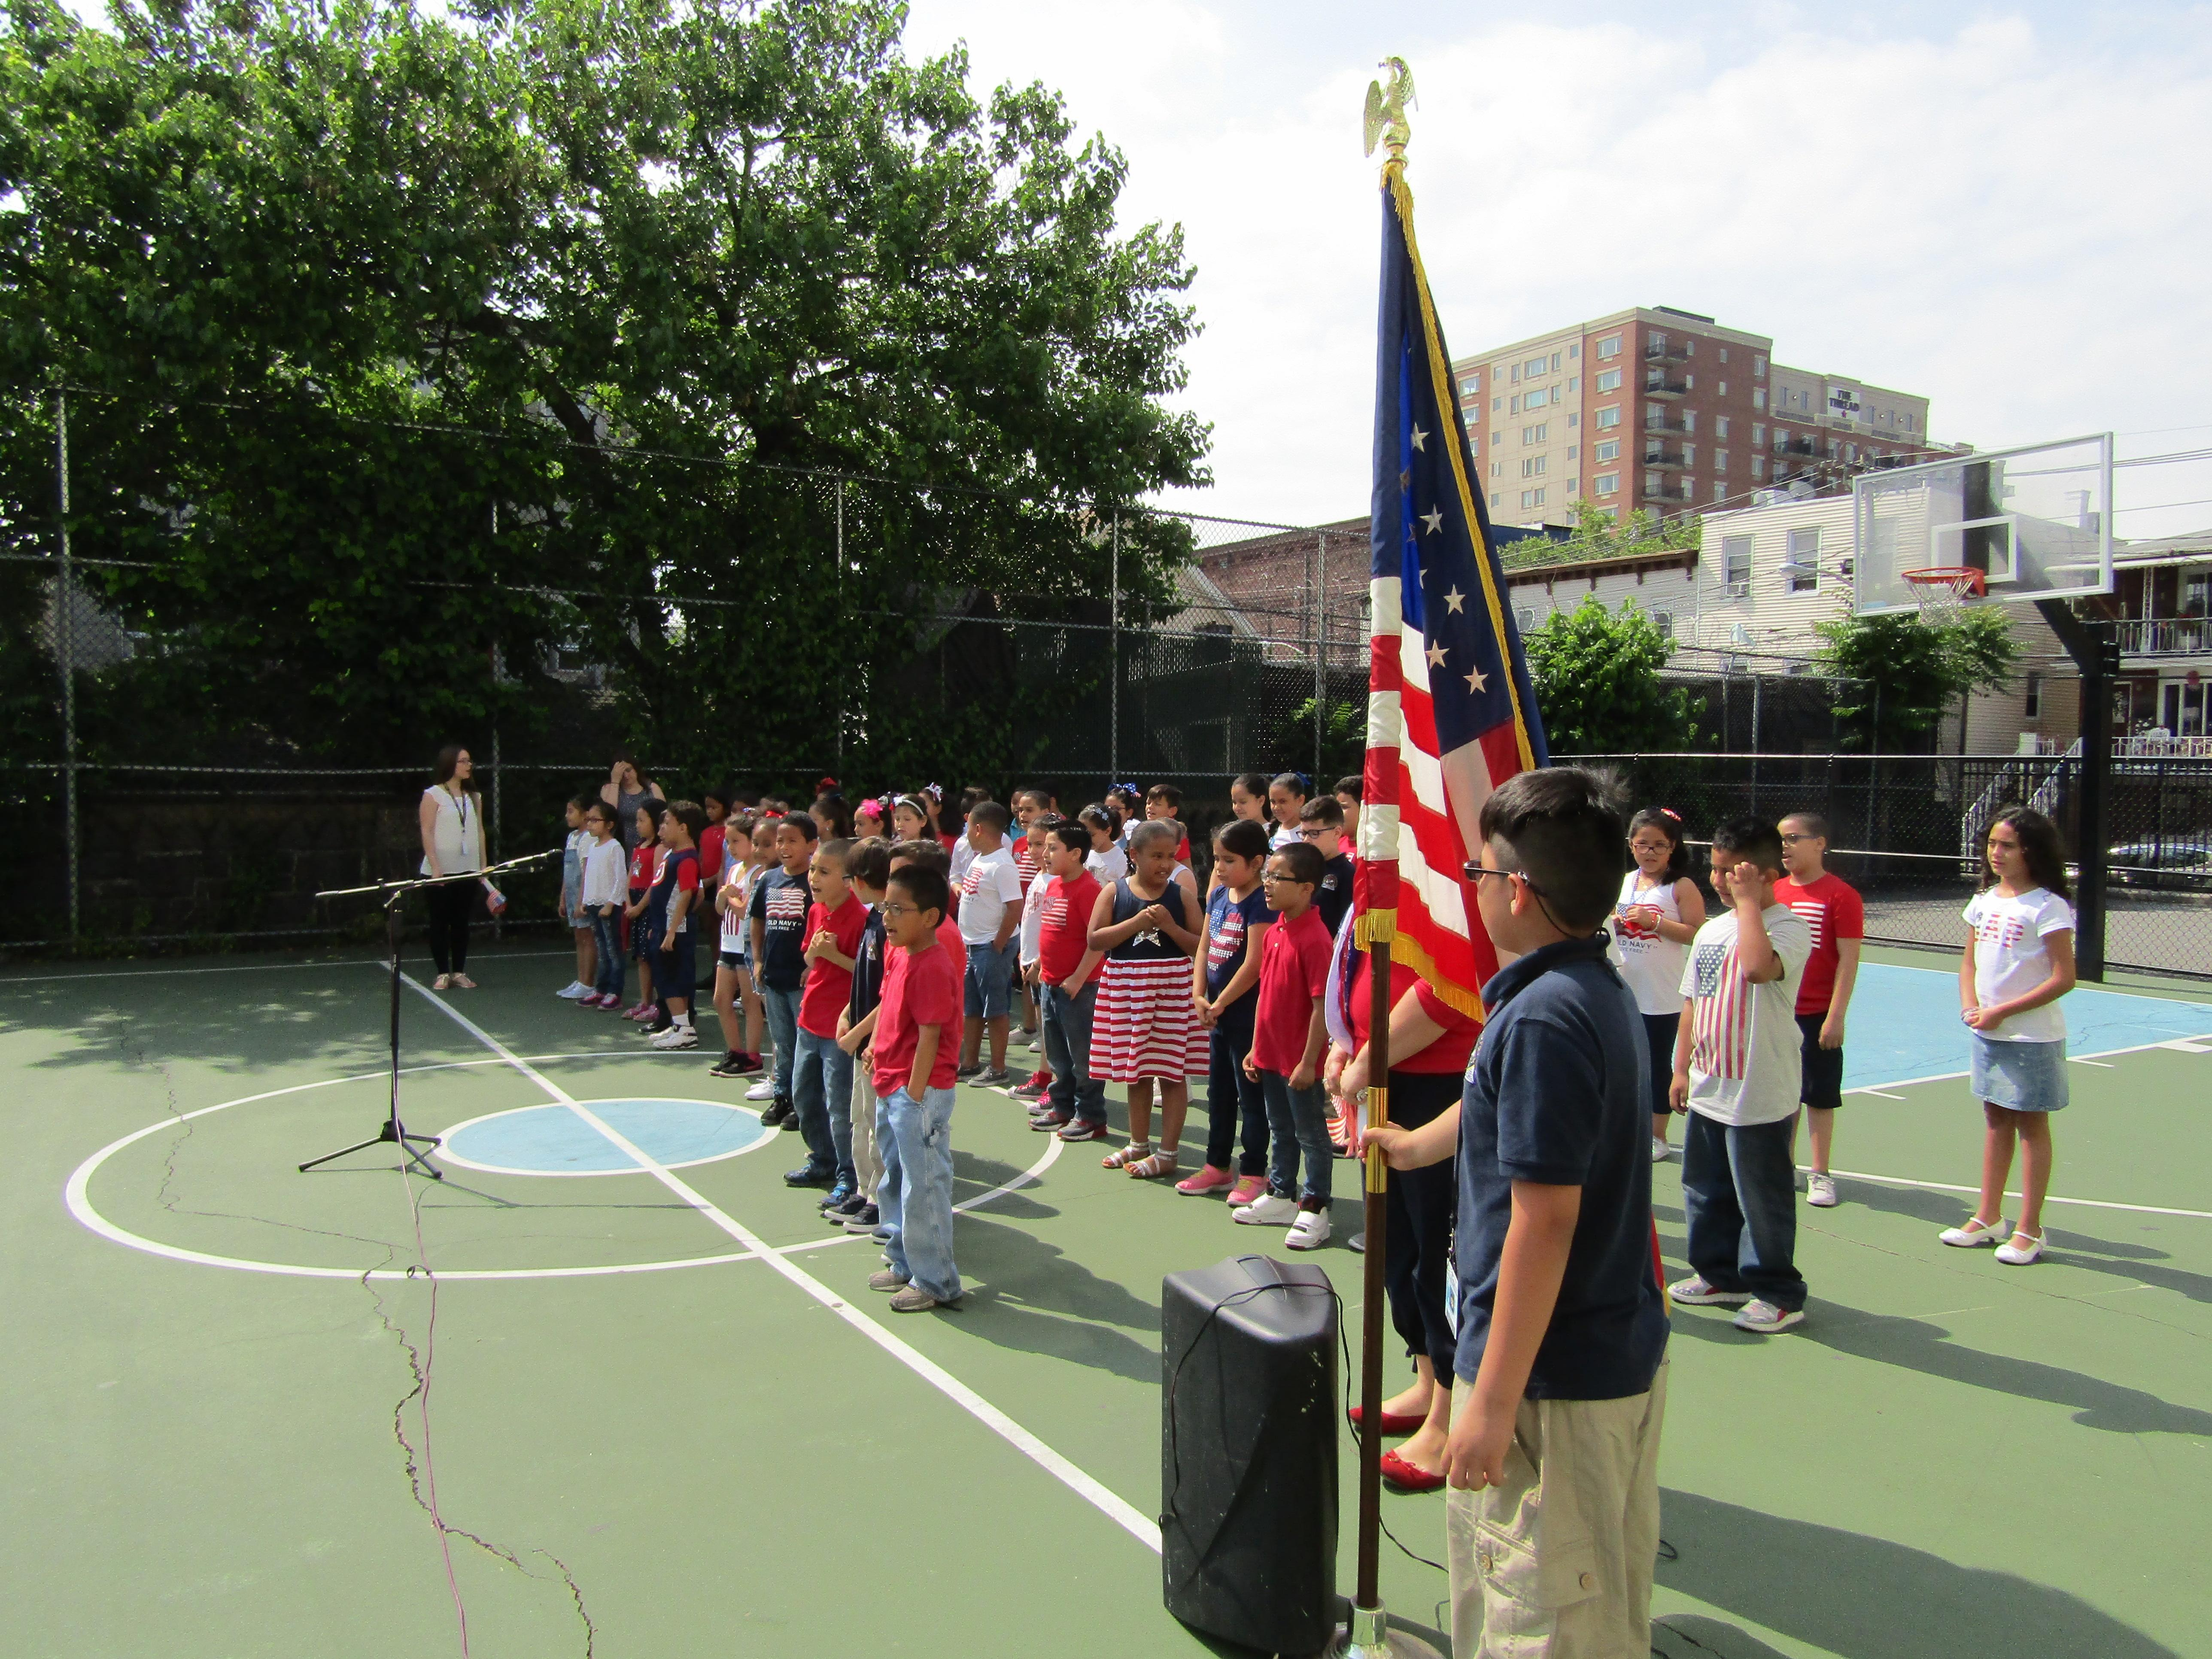 Children at attention saying the pledge